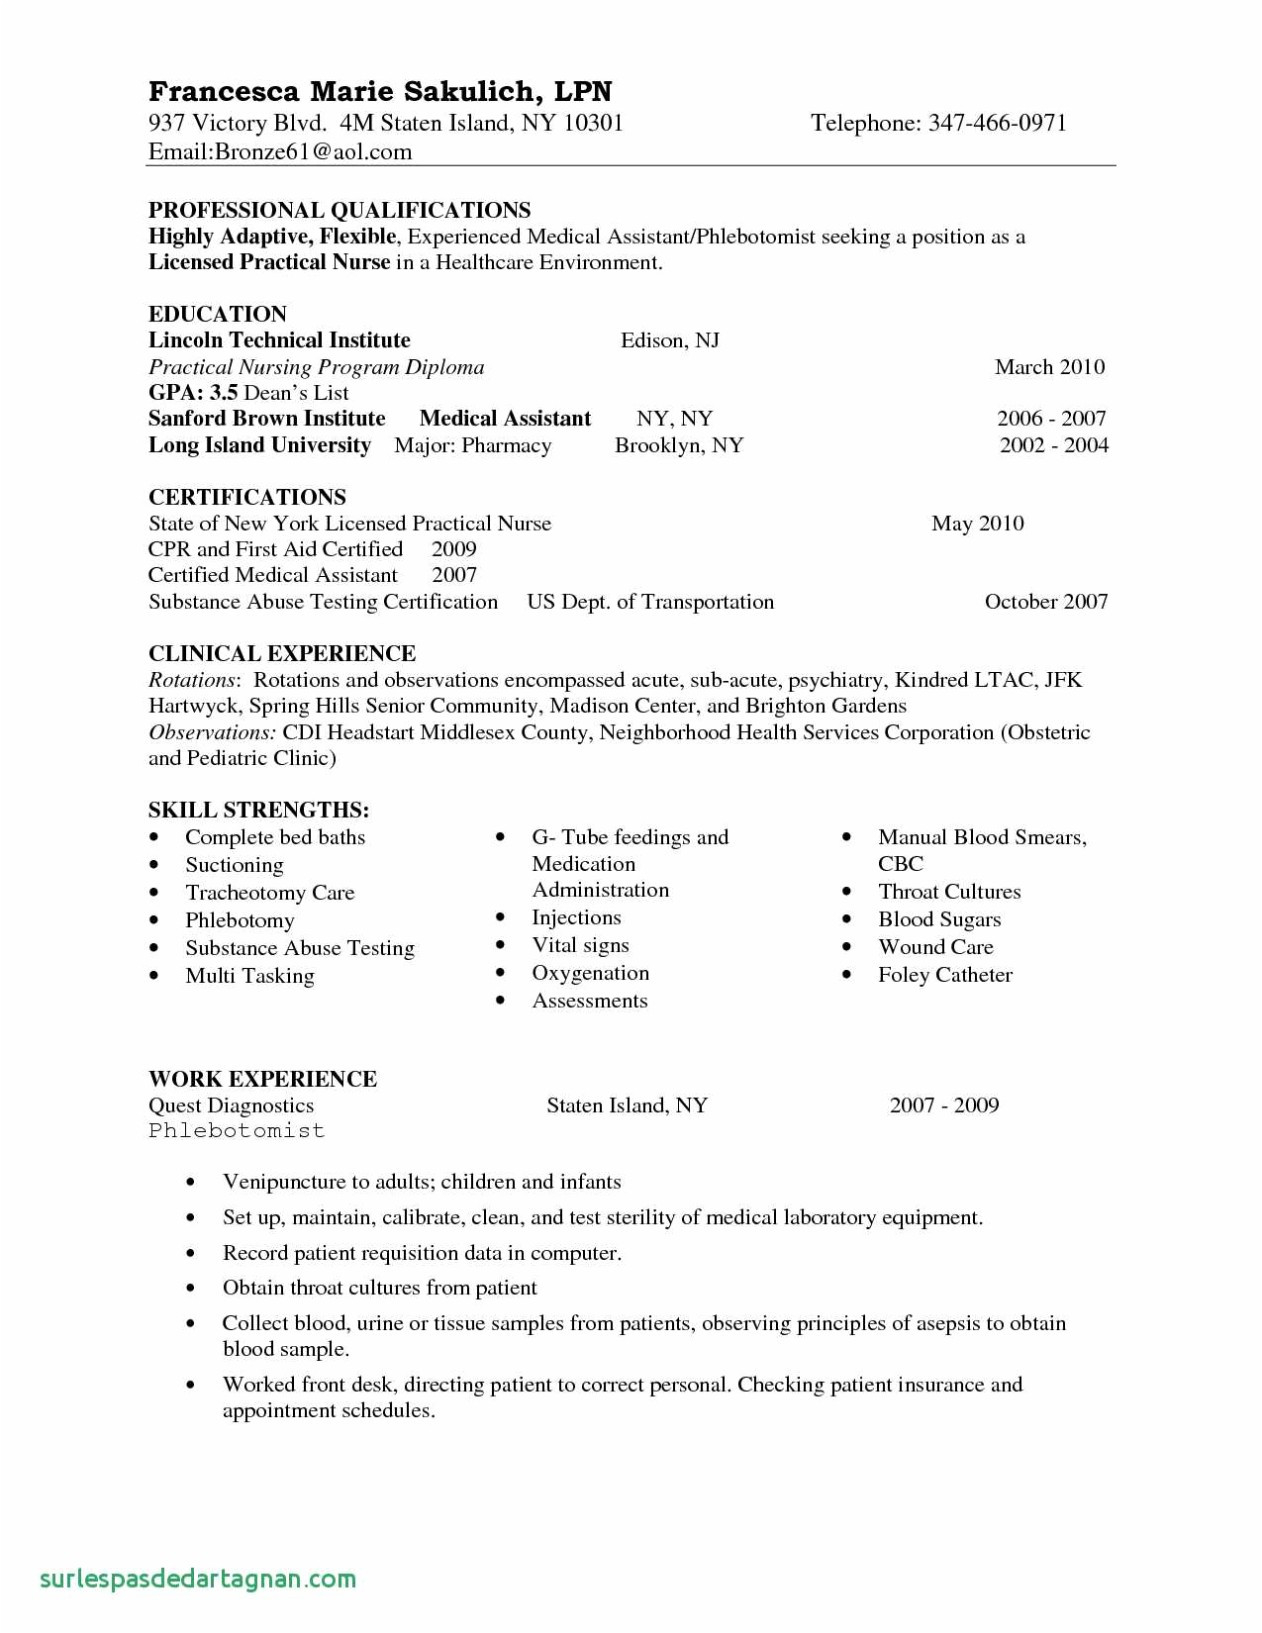 new grad nursing resume template Collection-Awesome New Grad Nursing Resume Template 14-q